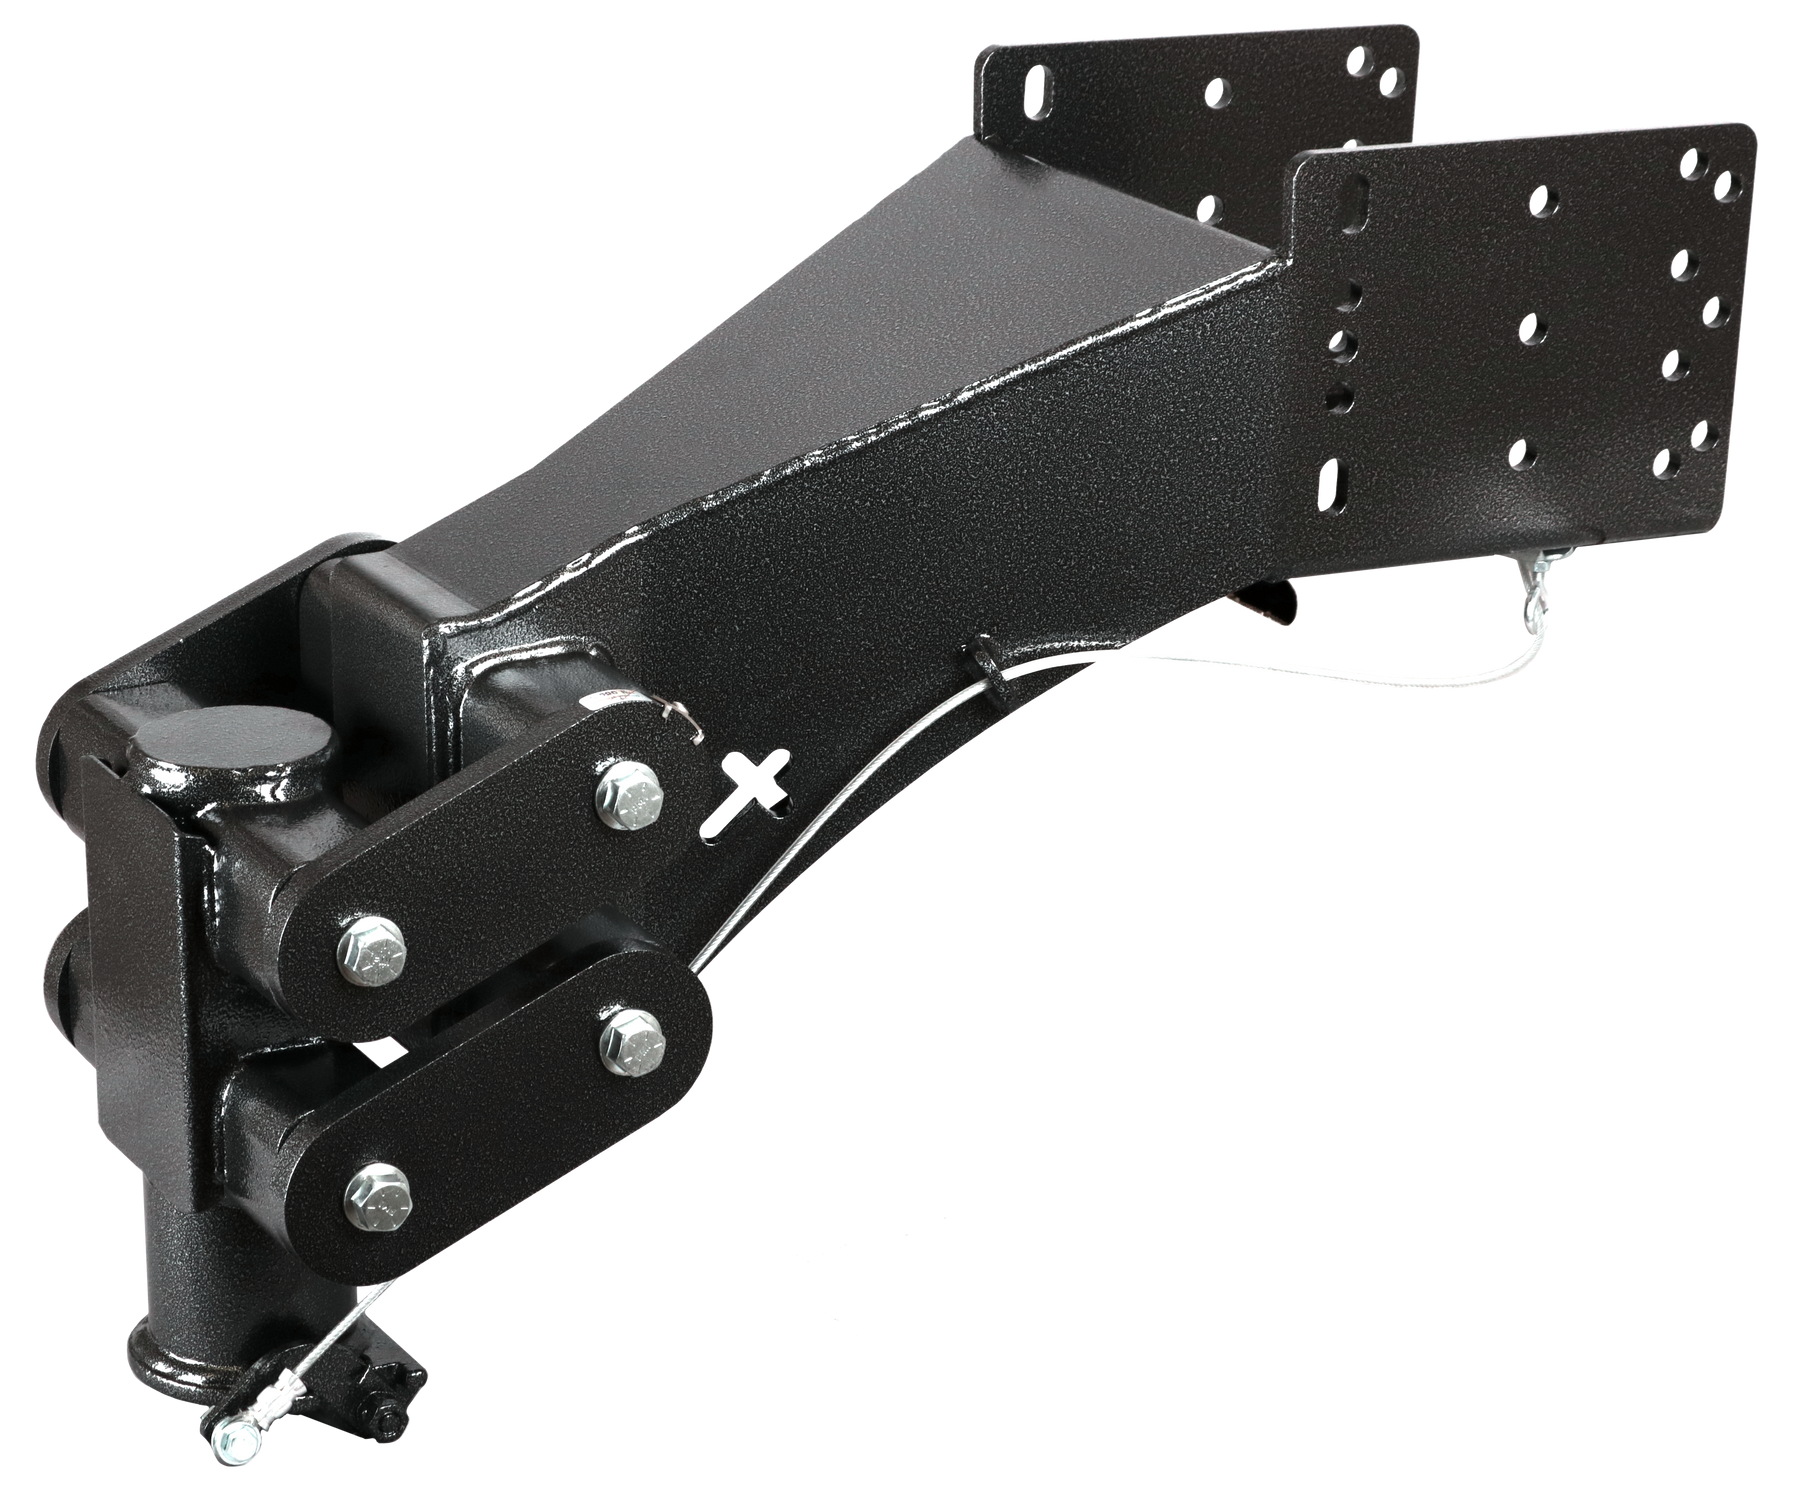 Executive Fifth-Wheel Gooseneck Conversion (Torsion-Flex) -AT NexAge Trailer Parts We Price Match Etrailer with Free Shipping, Gen-Y